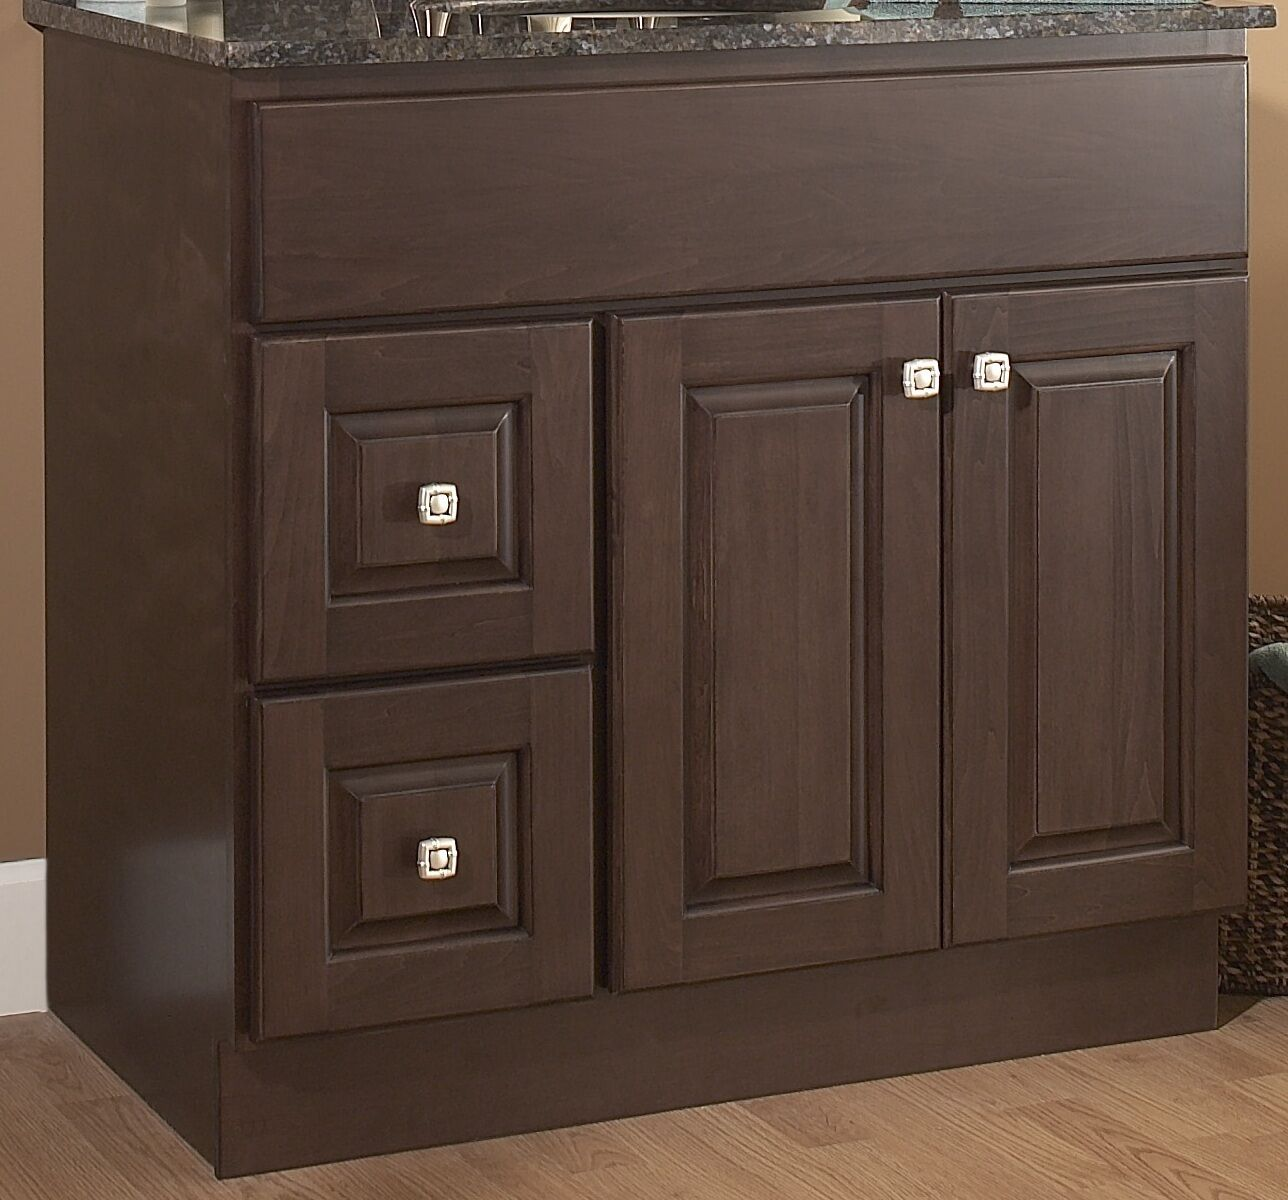 bathroom vanity base 36 wood frame 2 lh drawers 2 door dark stained